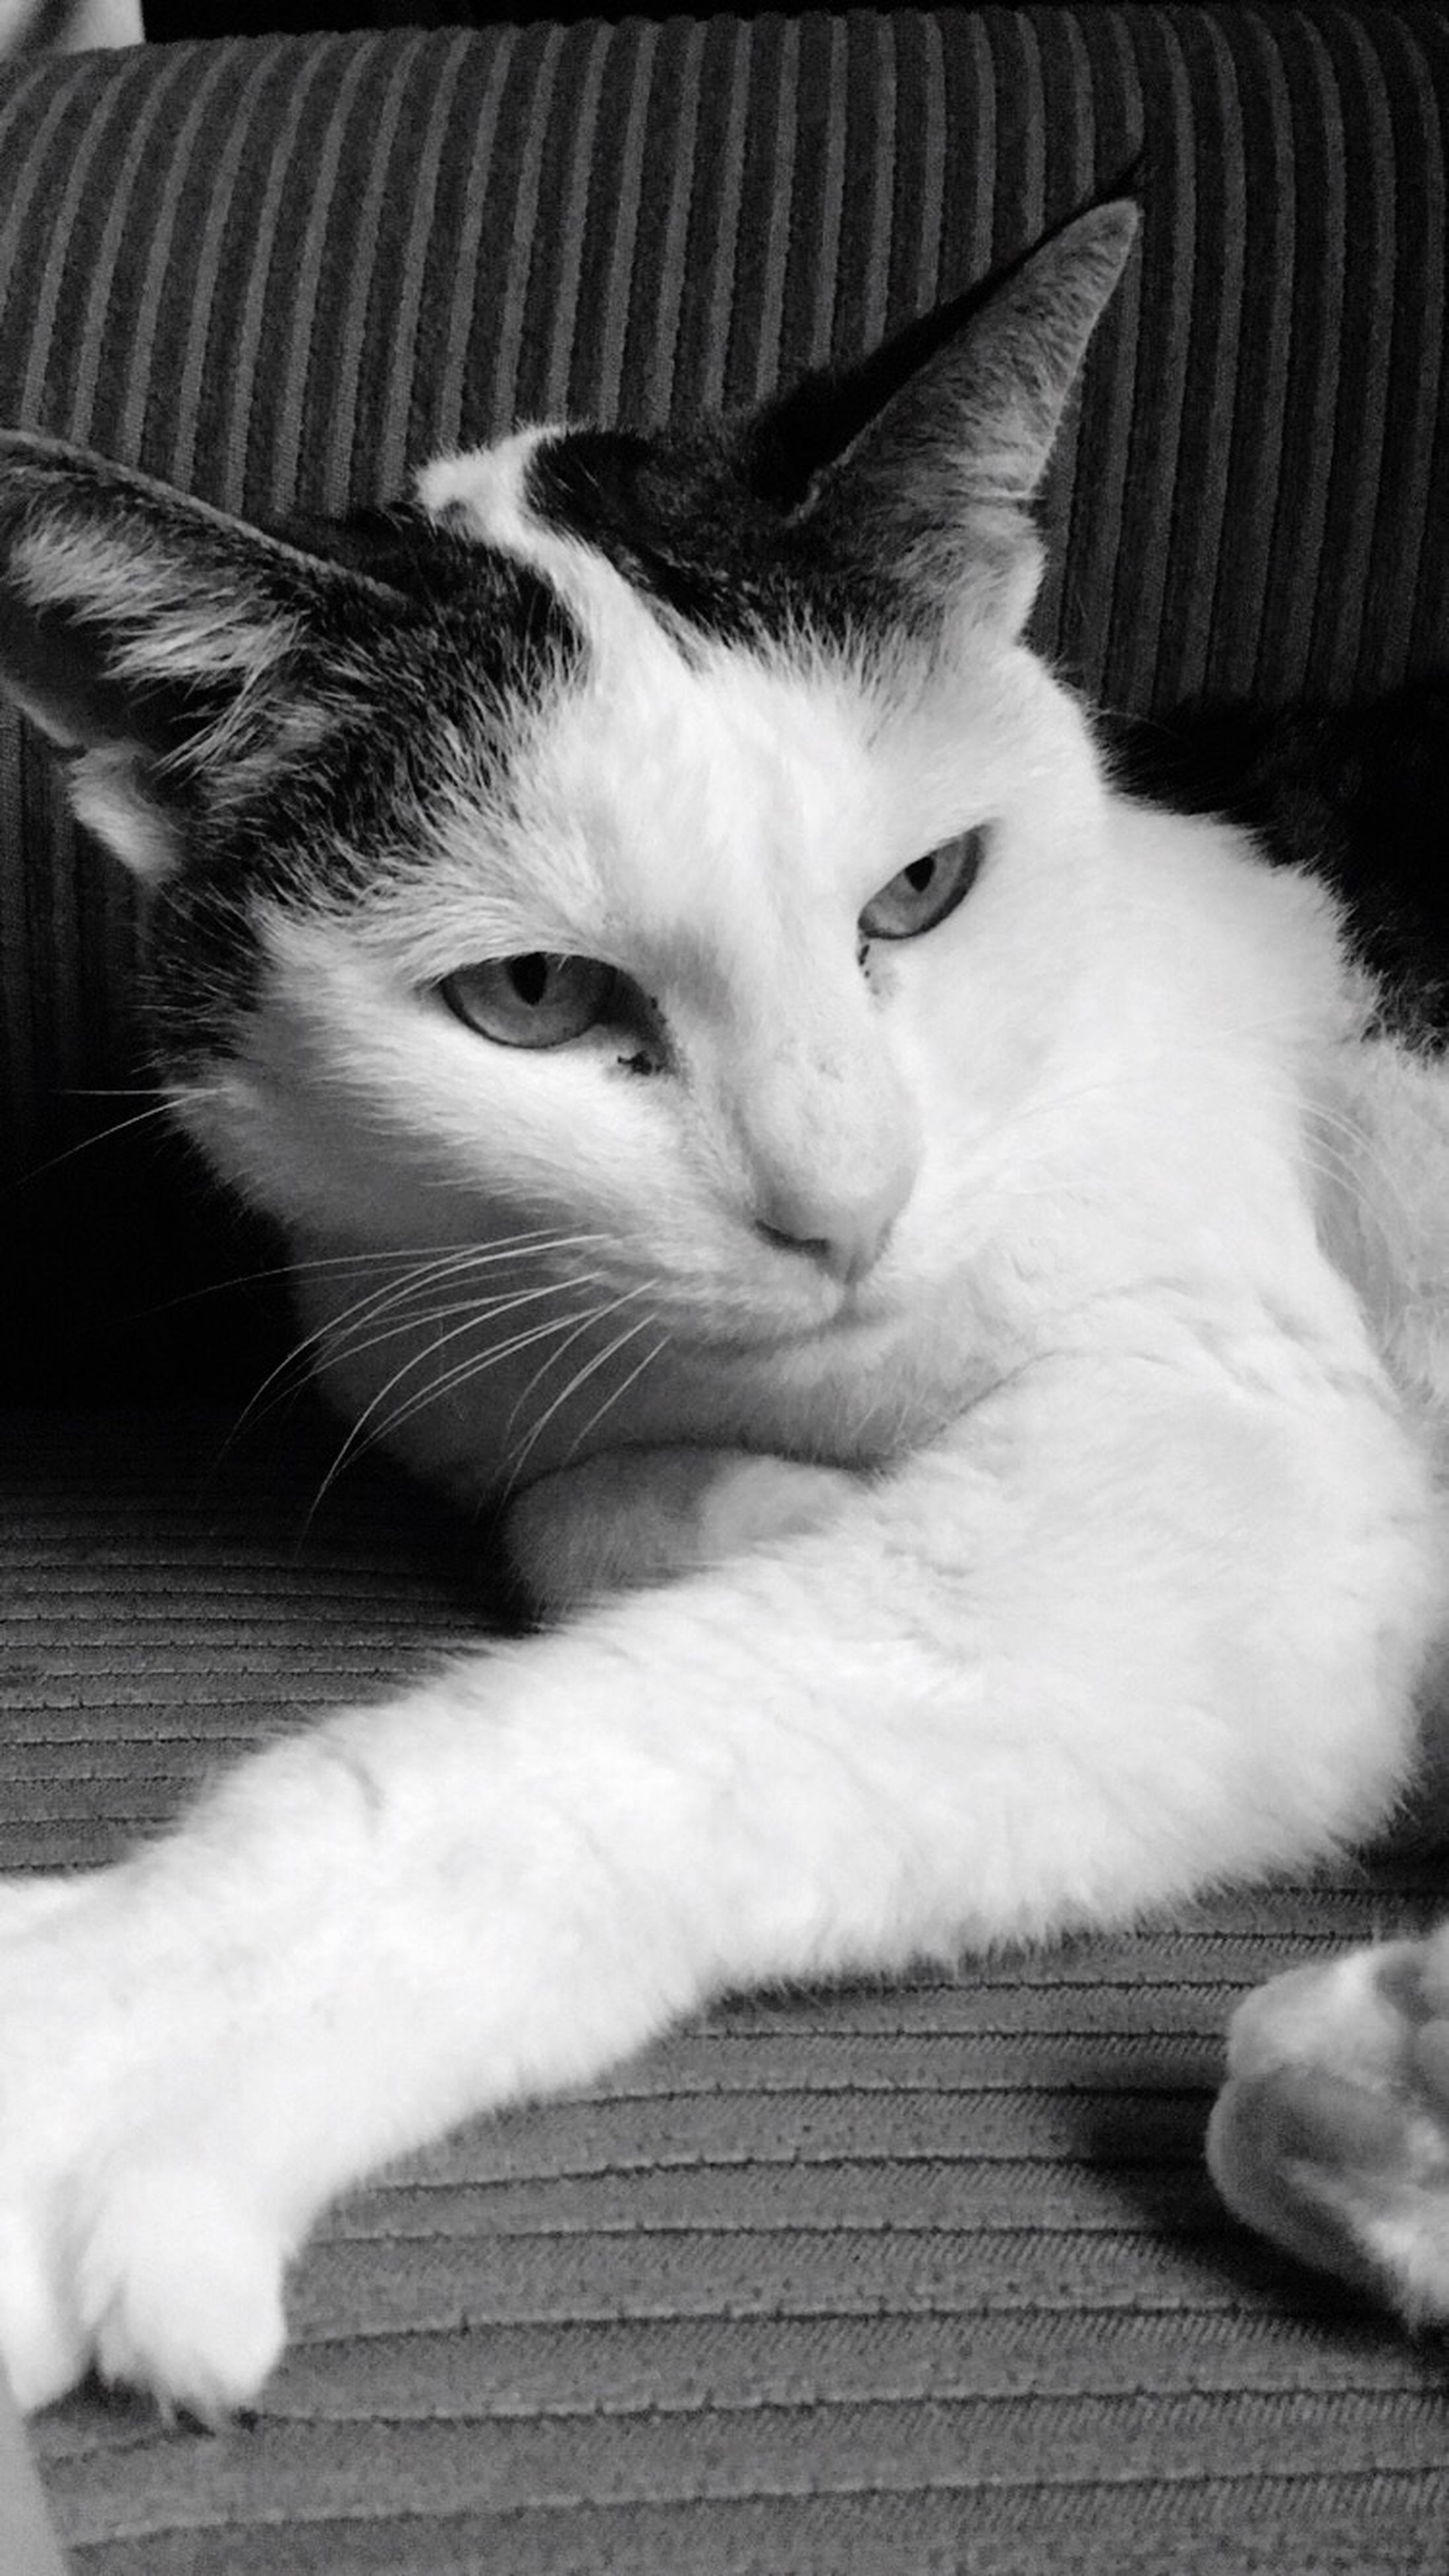 domestic cat, pets, domestic animals, cat, one animal, indoors, animal themes, feline, mammal, relaxation, whisker, close-up, resting, lying down, home interior, animal head, portrait, looking at camera, bed, sofa